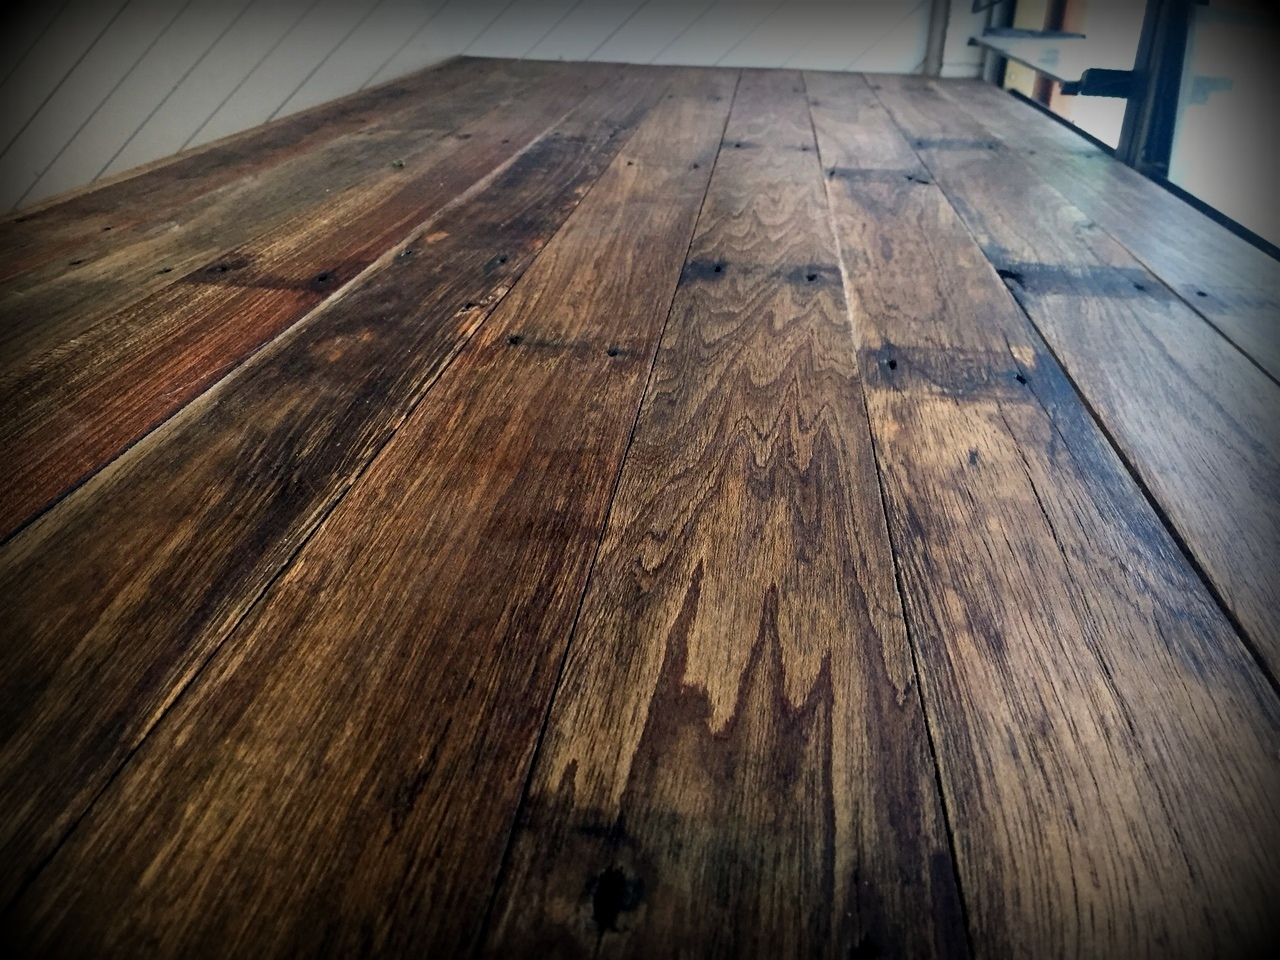 Desk made from old floorboards